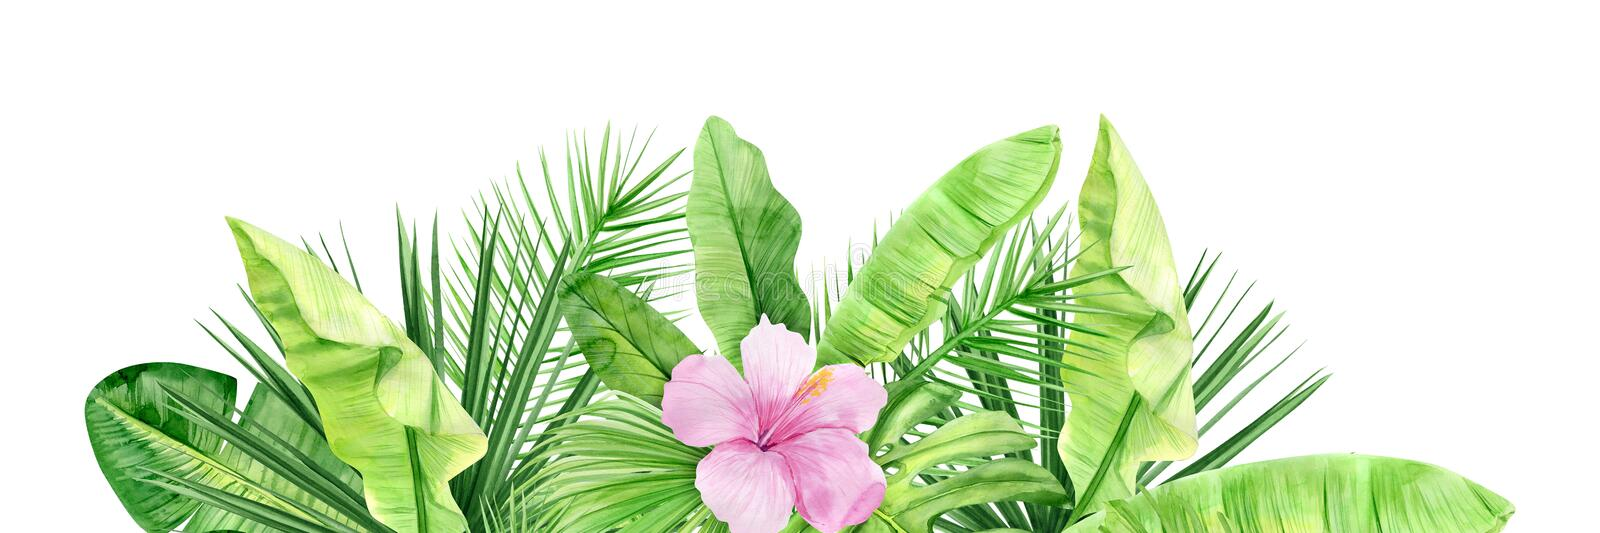 Green palm leaves and flowers banner. Tropical plant. Hand painted watercolor illustration isolated on white background. Realistic. Botanical art. For Web royalty free stock image